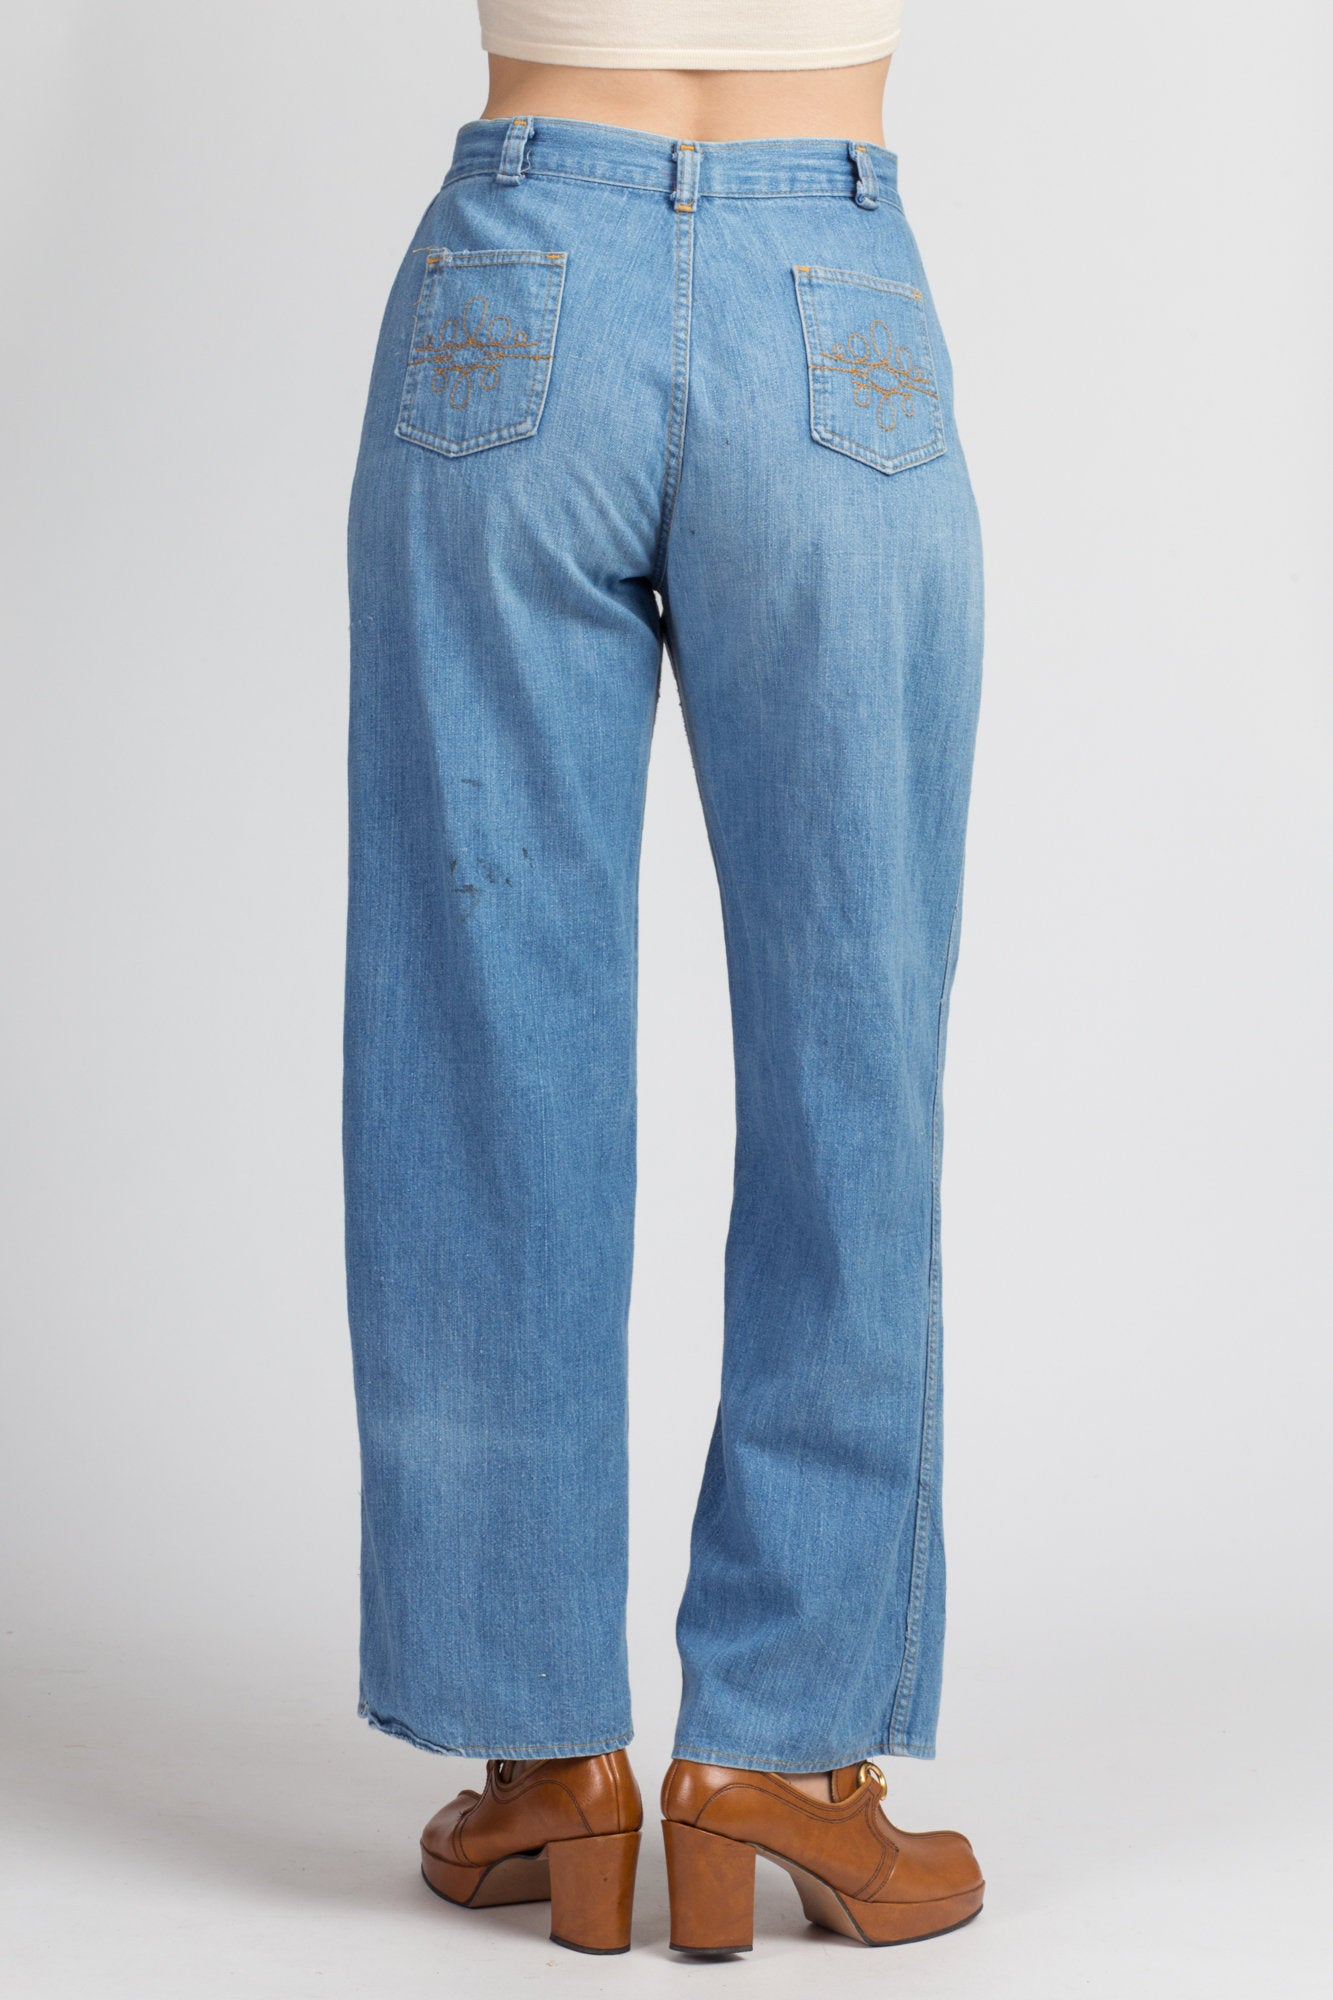 70s Lightweight High Waist Jeans - Medium, 29""